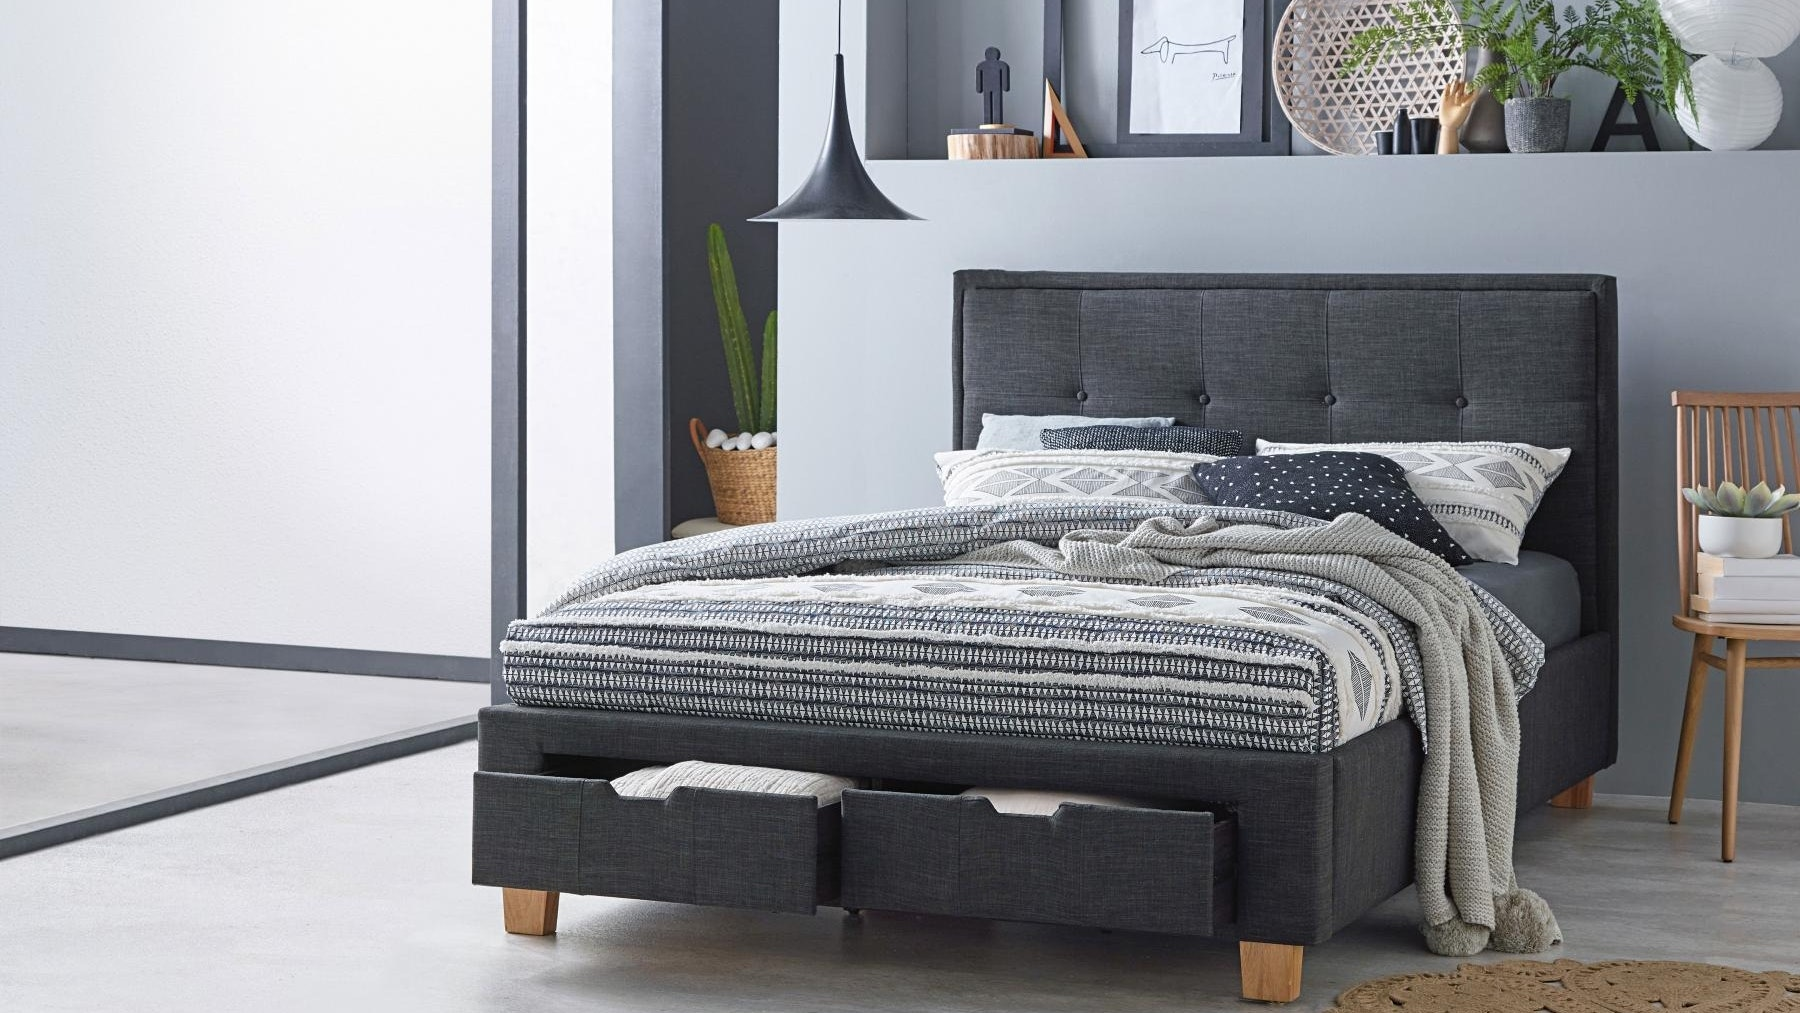 Halo Bed Frame with Storage - Charcoal